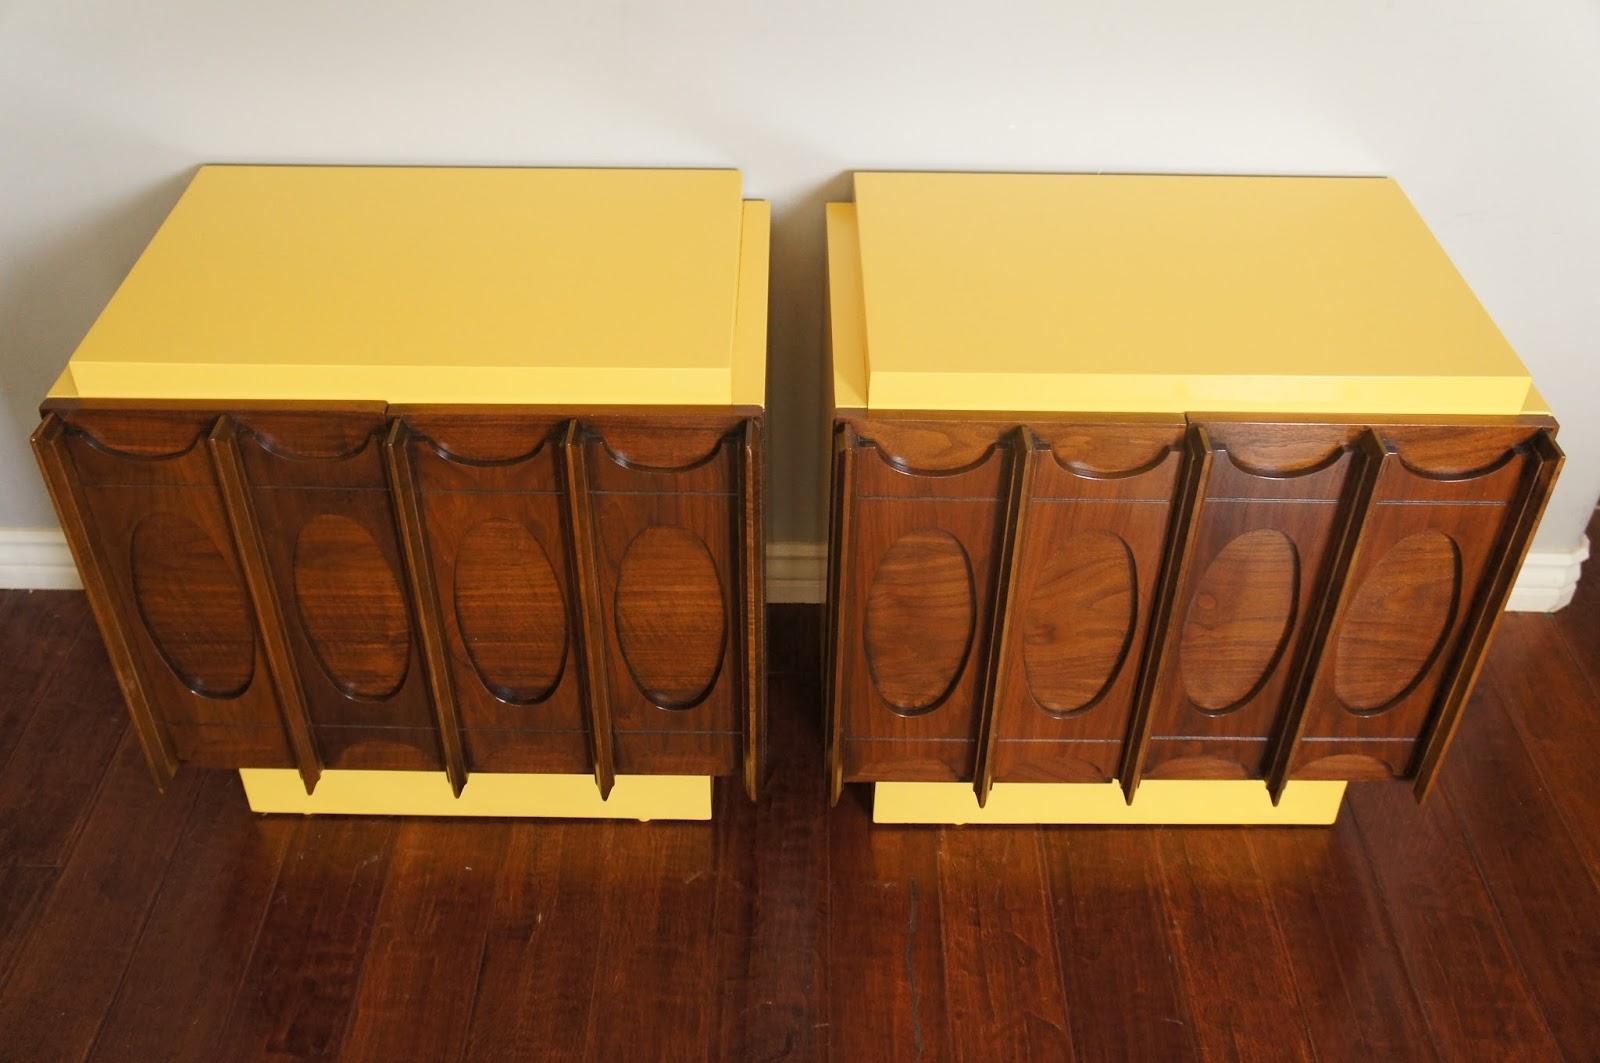 European Paint Finishes 2 Vintage Nighstands Brutalist Style Retro Yellow Brown